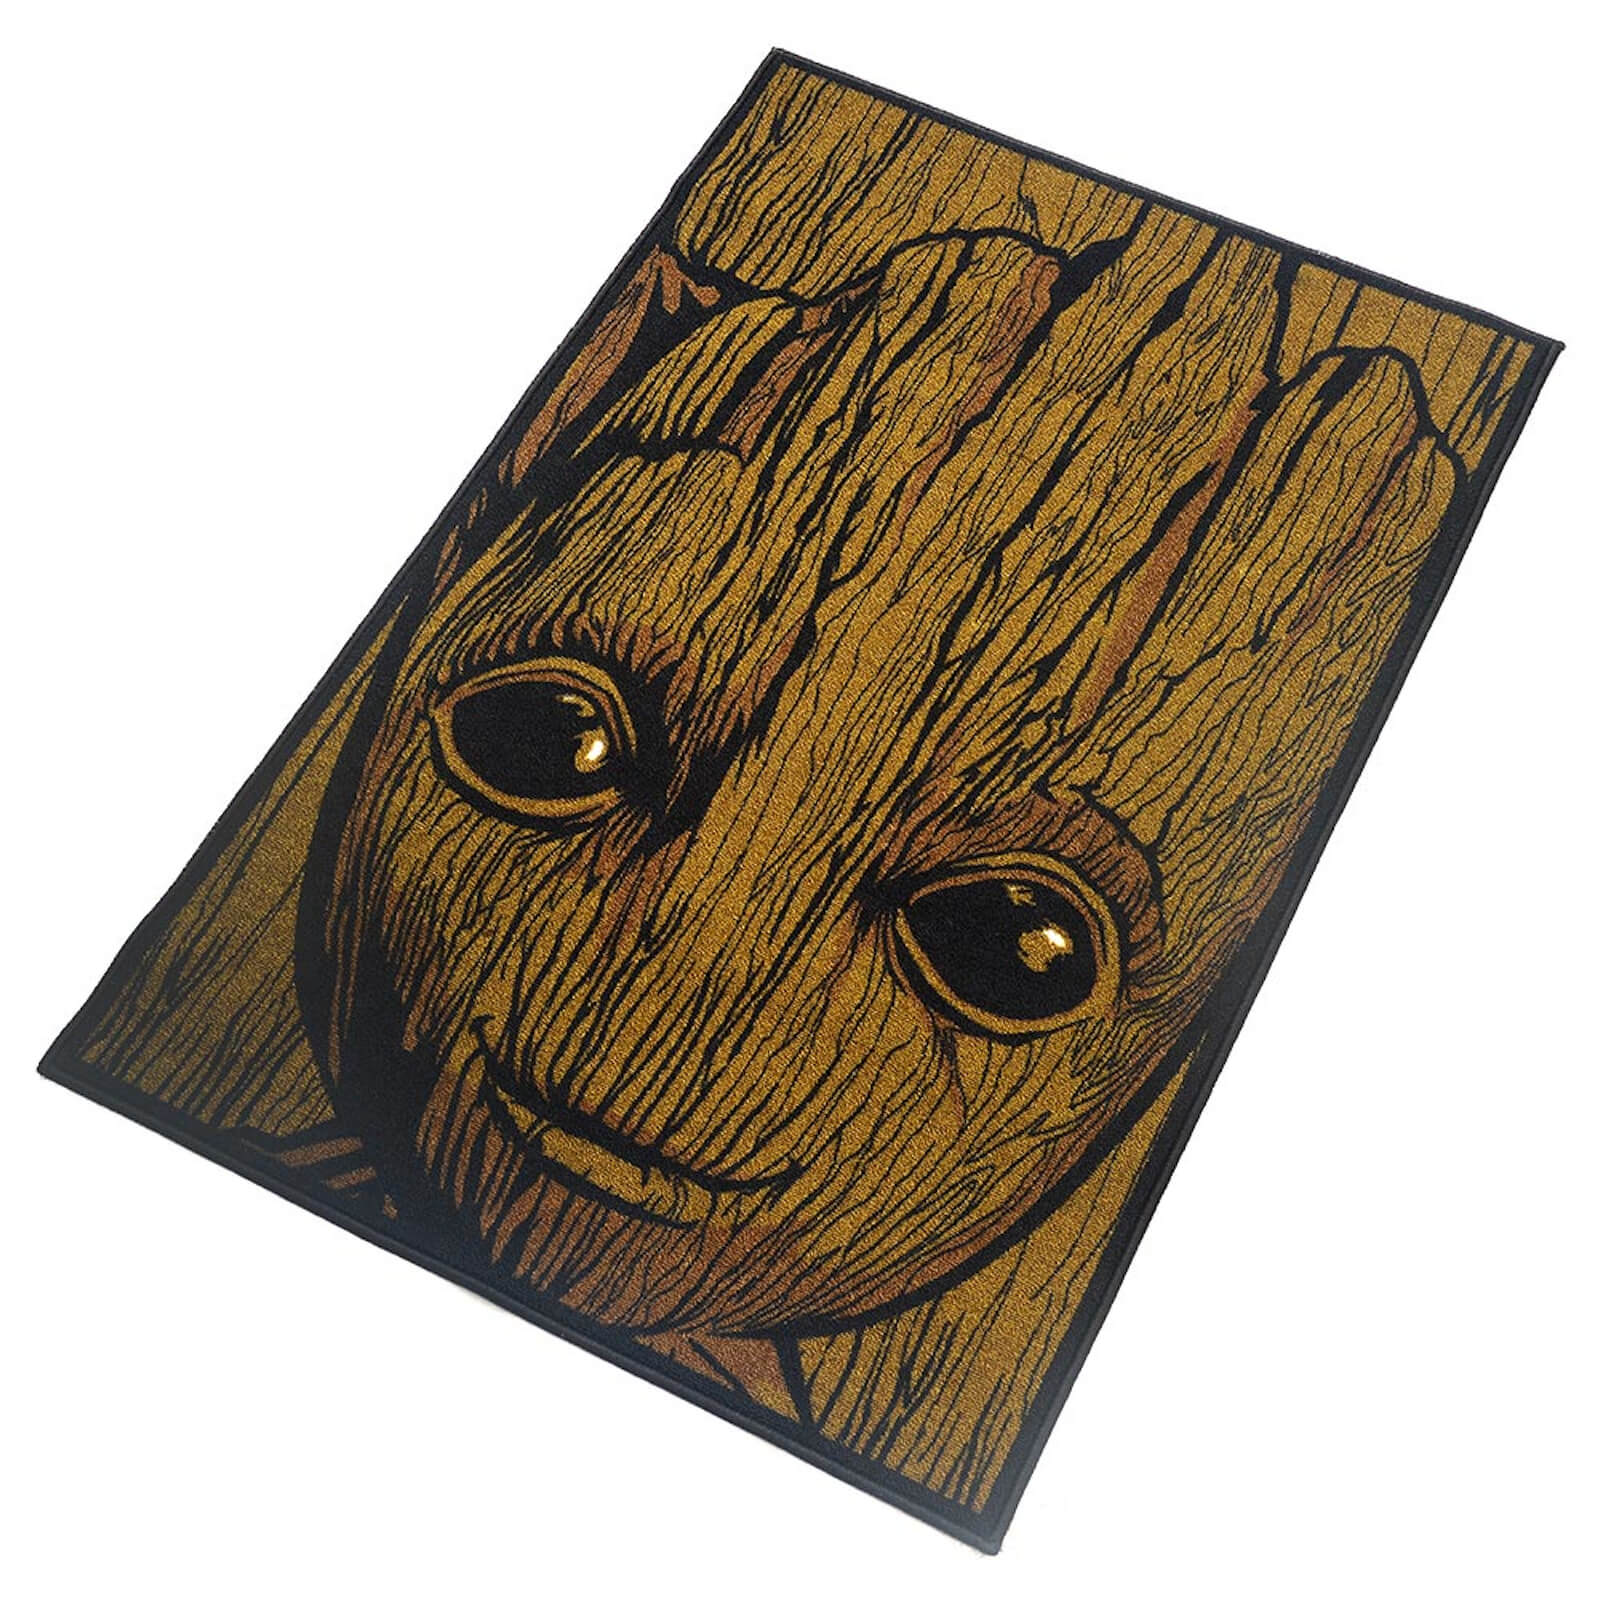 Image of Marvel Guardians of the Galaxy Groot 52 Inch x 35 Inch Rug